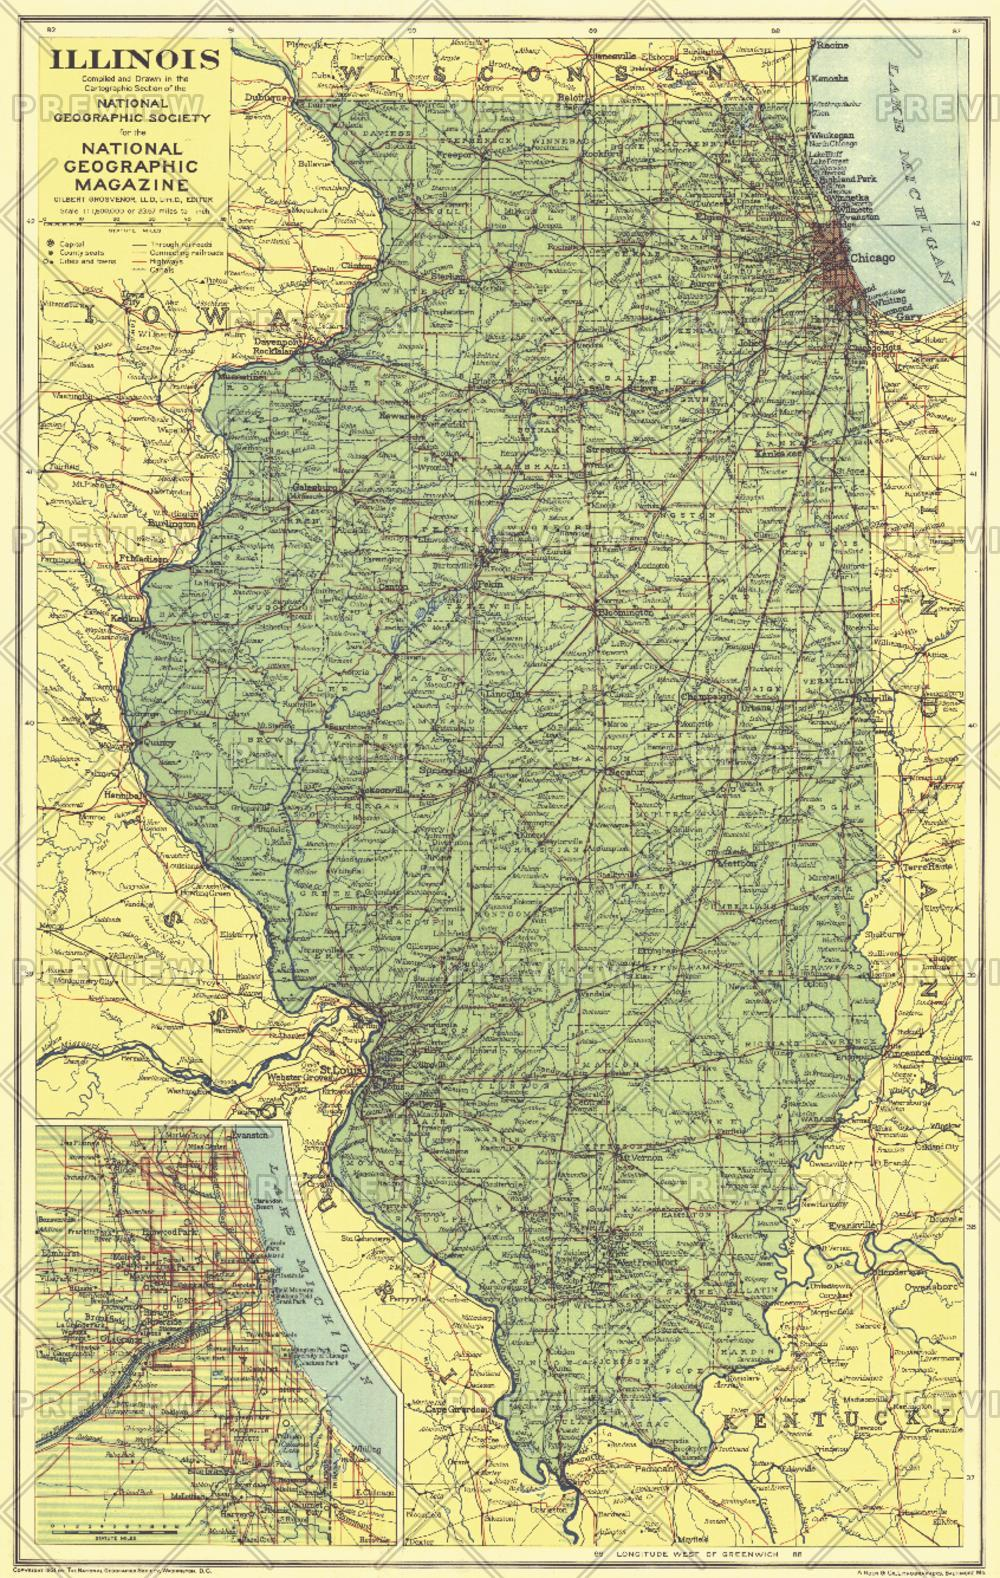 Illinois - Published 1931